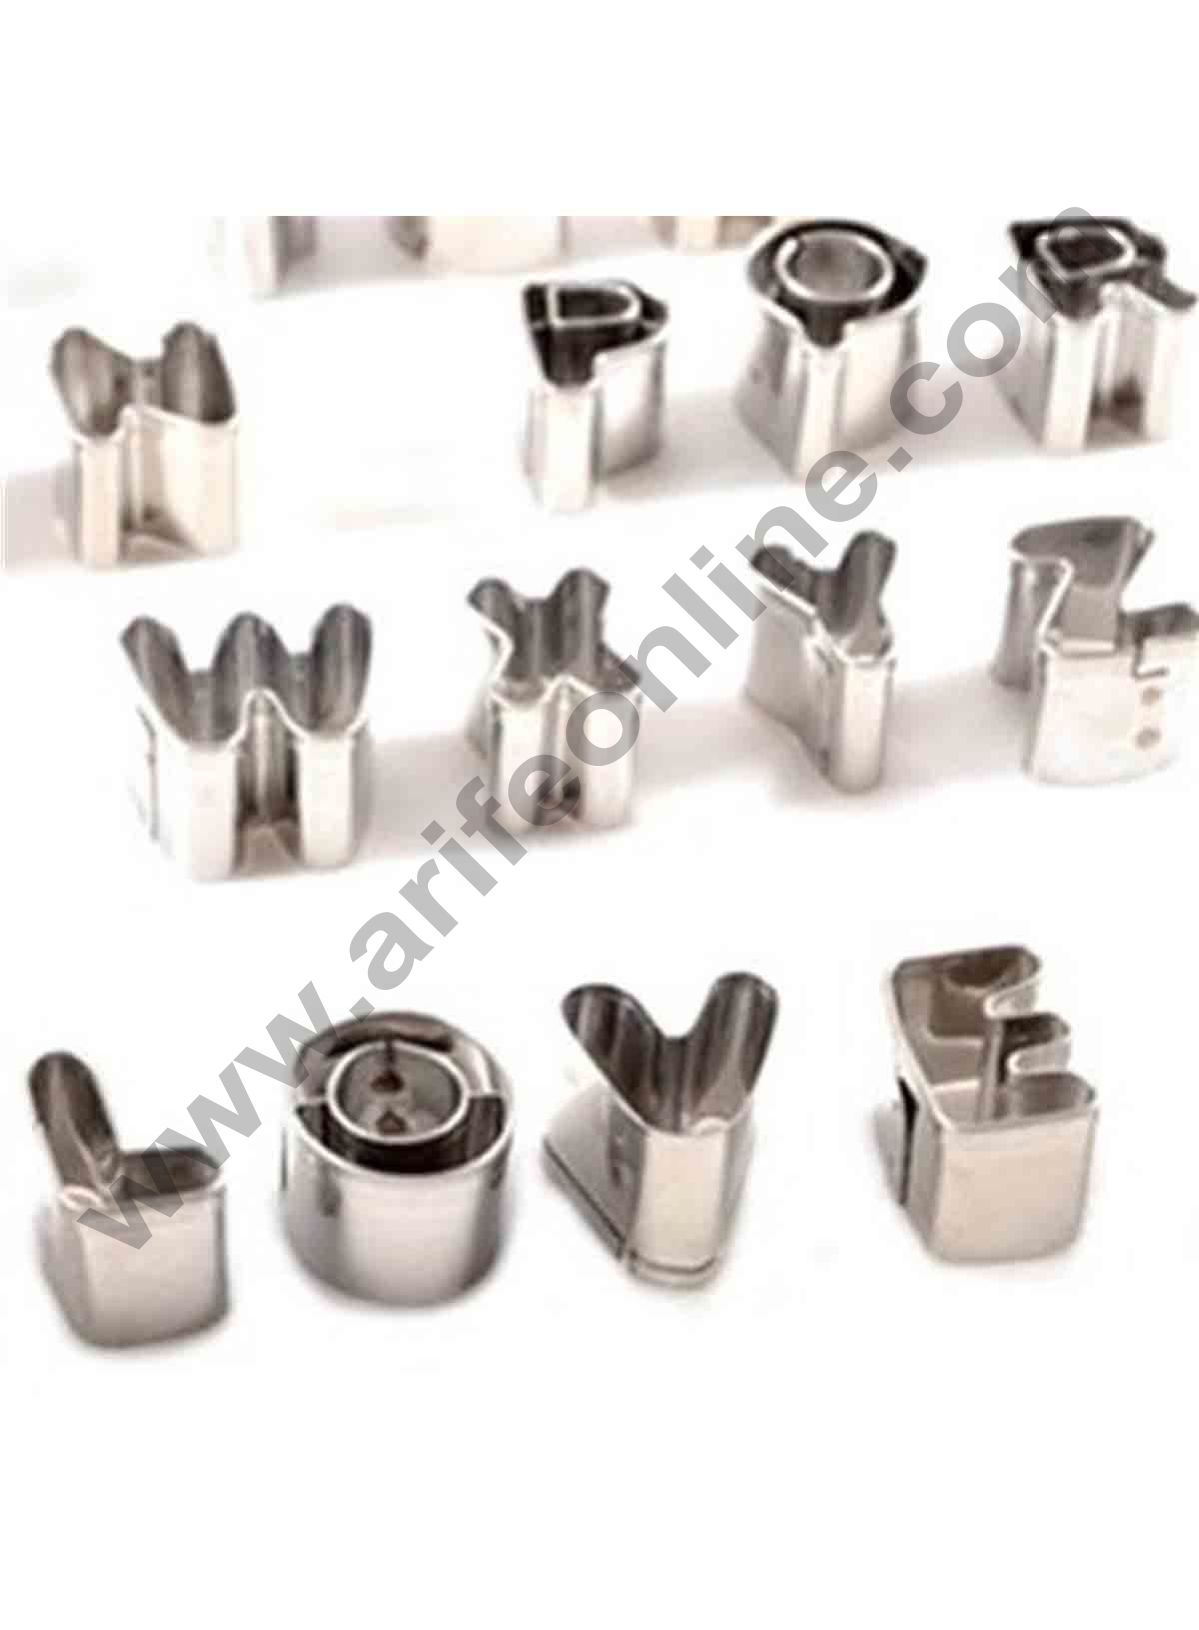 Cake Decor 36pcs/Set Stainless Steel Alphabet Letters & Numbers Baking Molds Fondant Cake Decorating Cutters Cookie Biscuit Mould Set